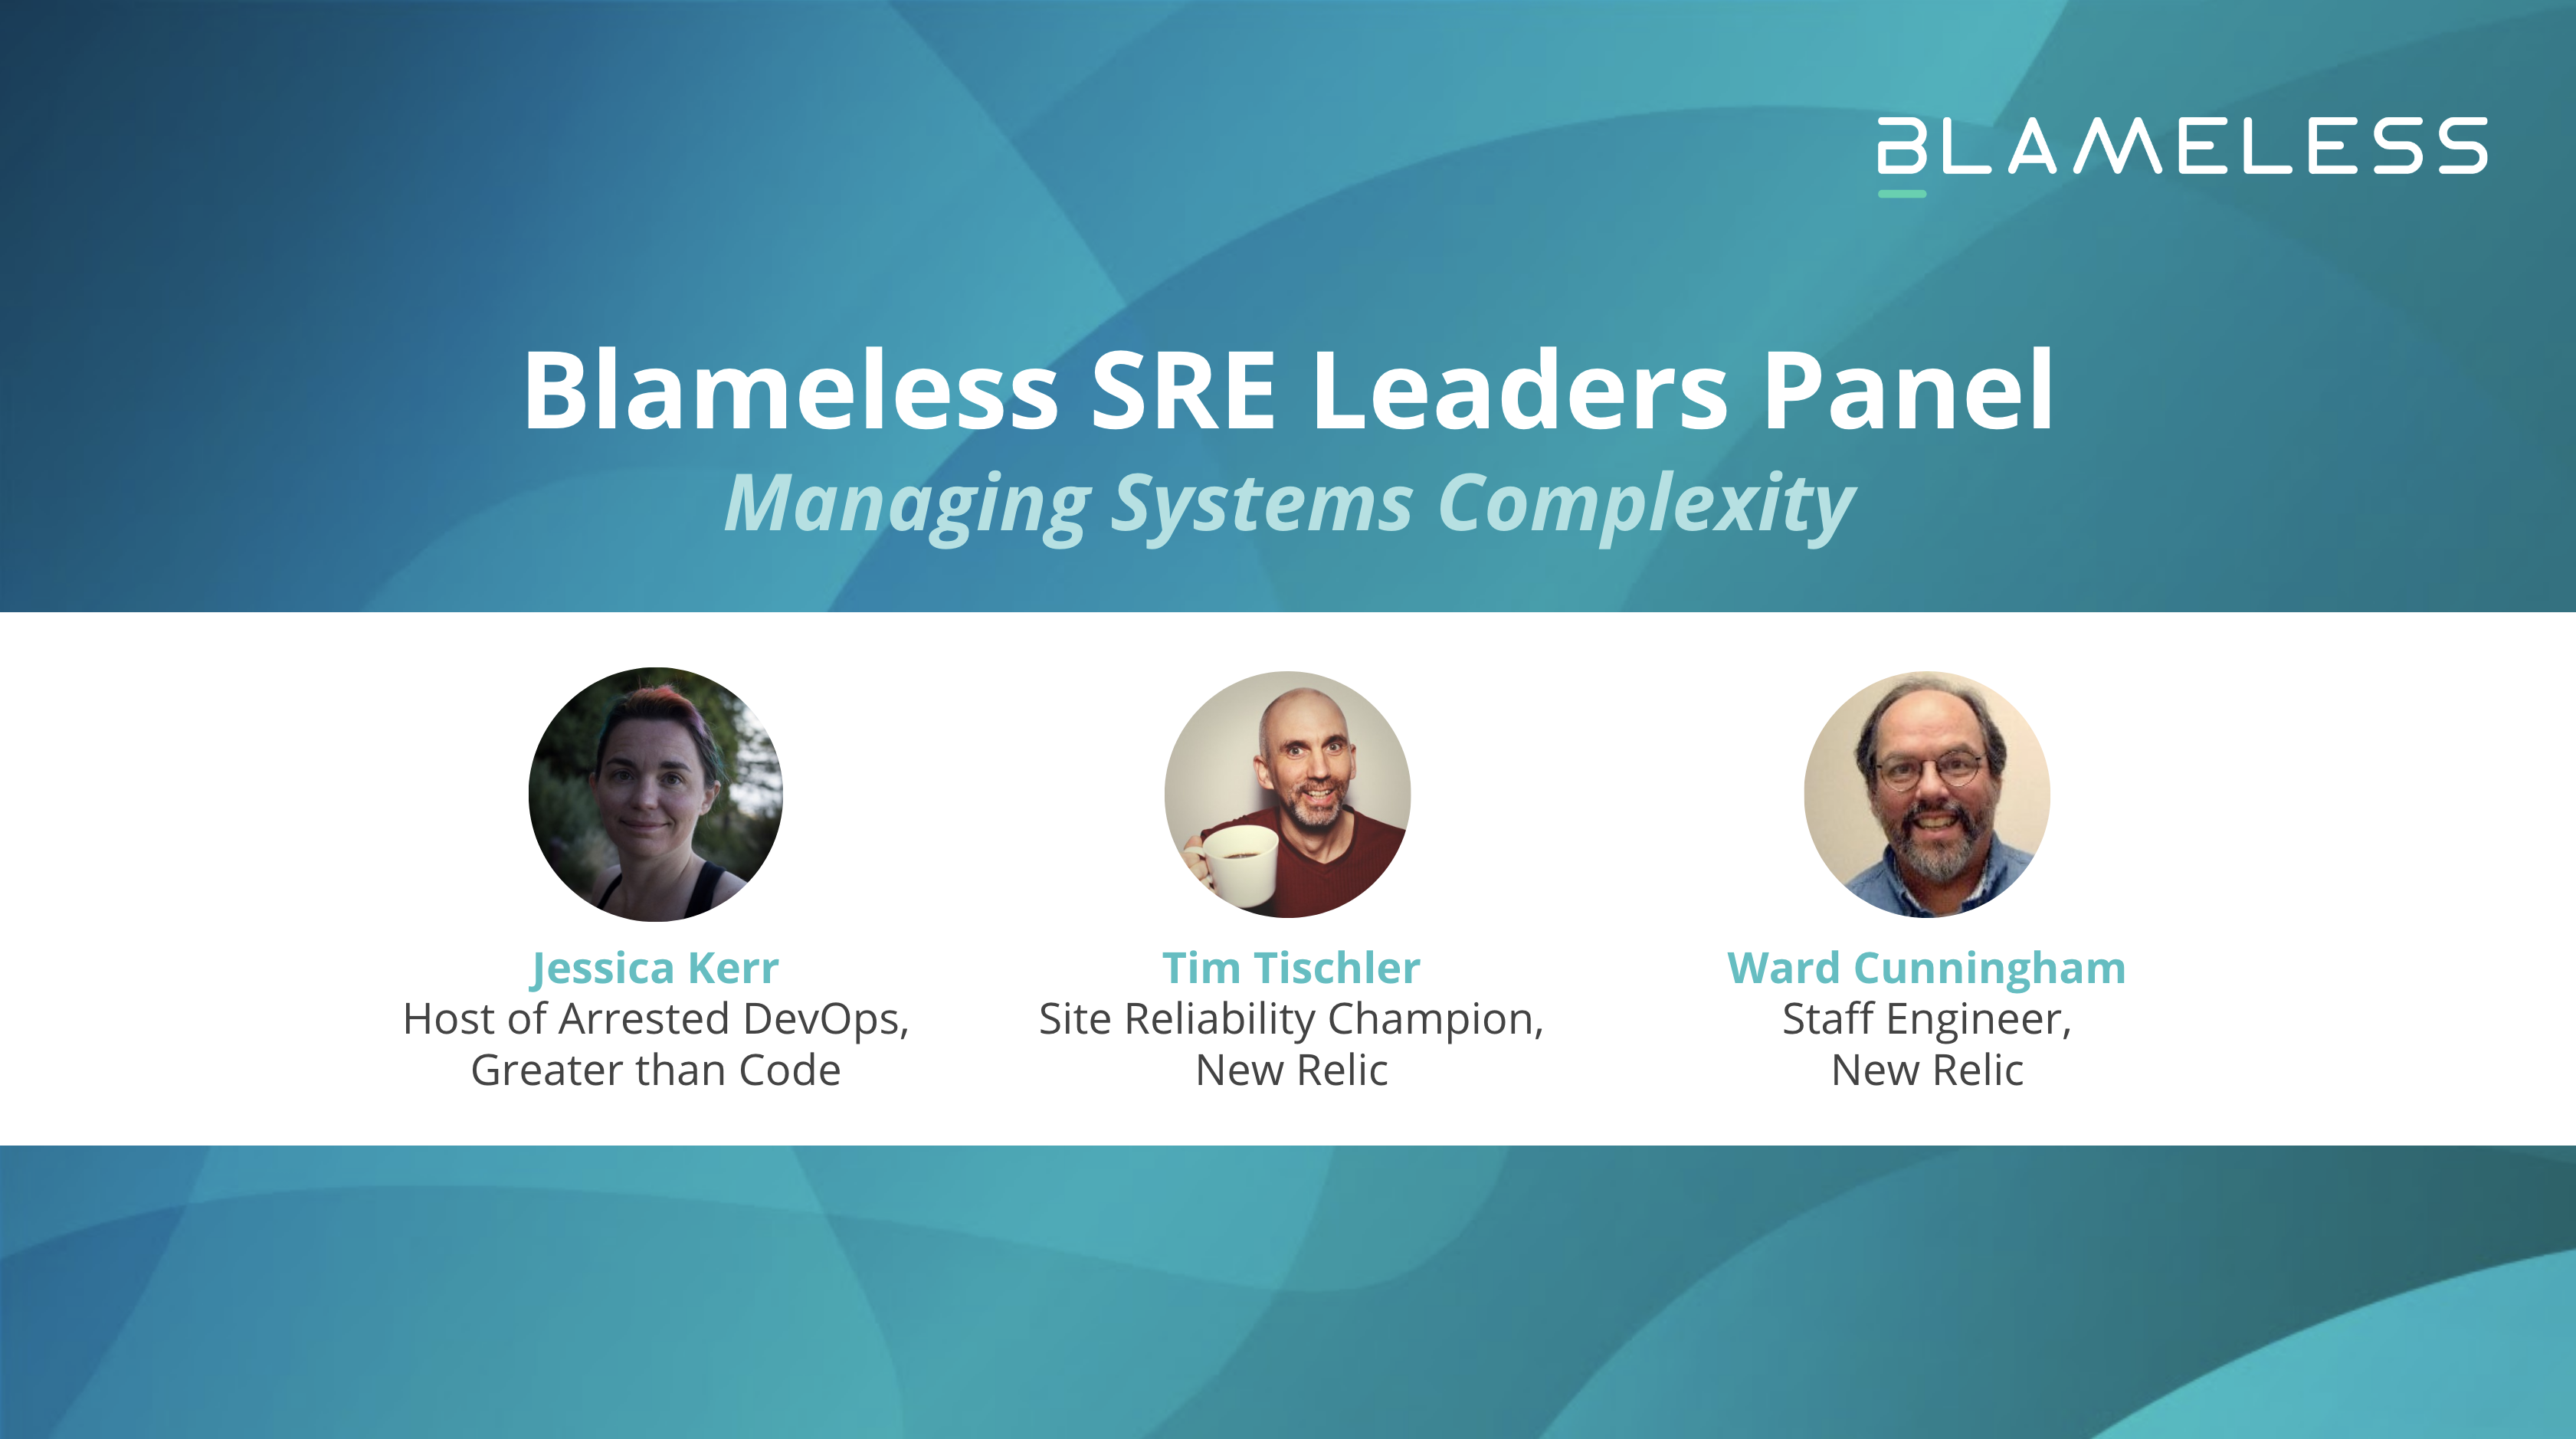 SRE Leaders Panel: Managing Systems Complexity